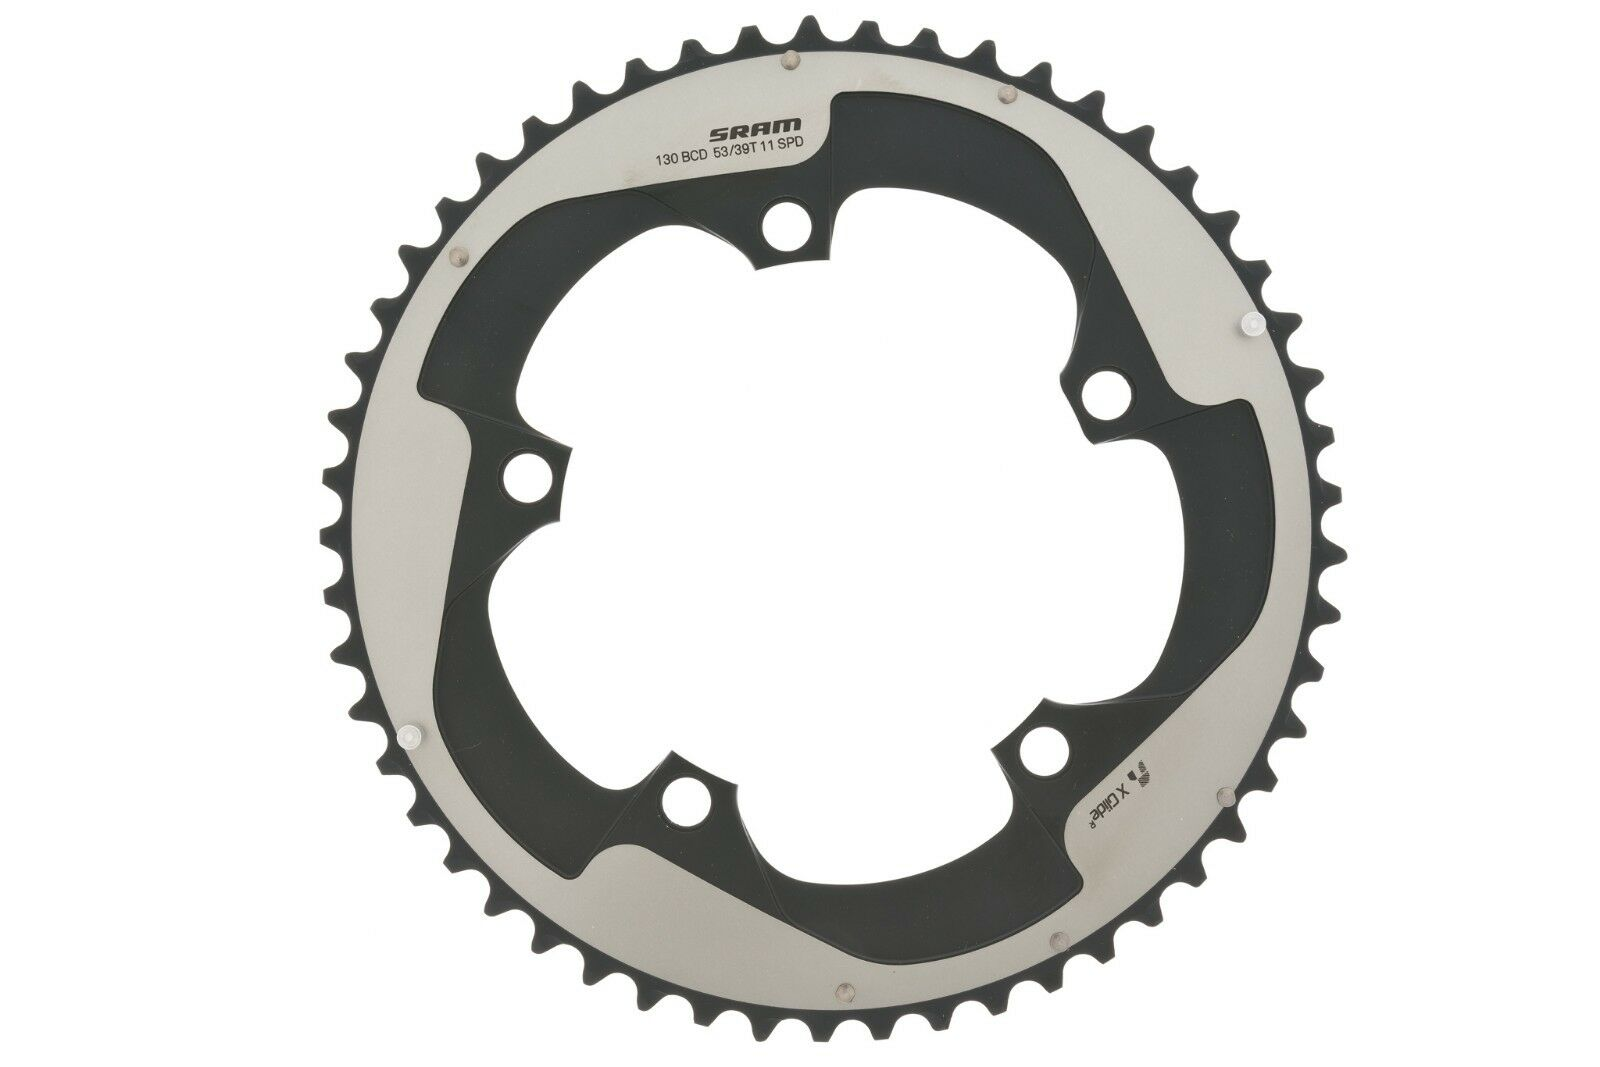 SRAM Red 22 Chainring 53T Yaw, S3, 130 BCD, AL5, - 11 Speed - Falcon Grey